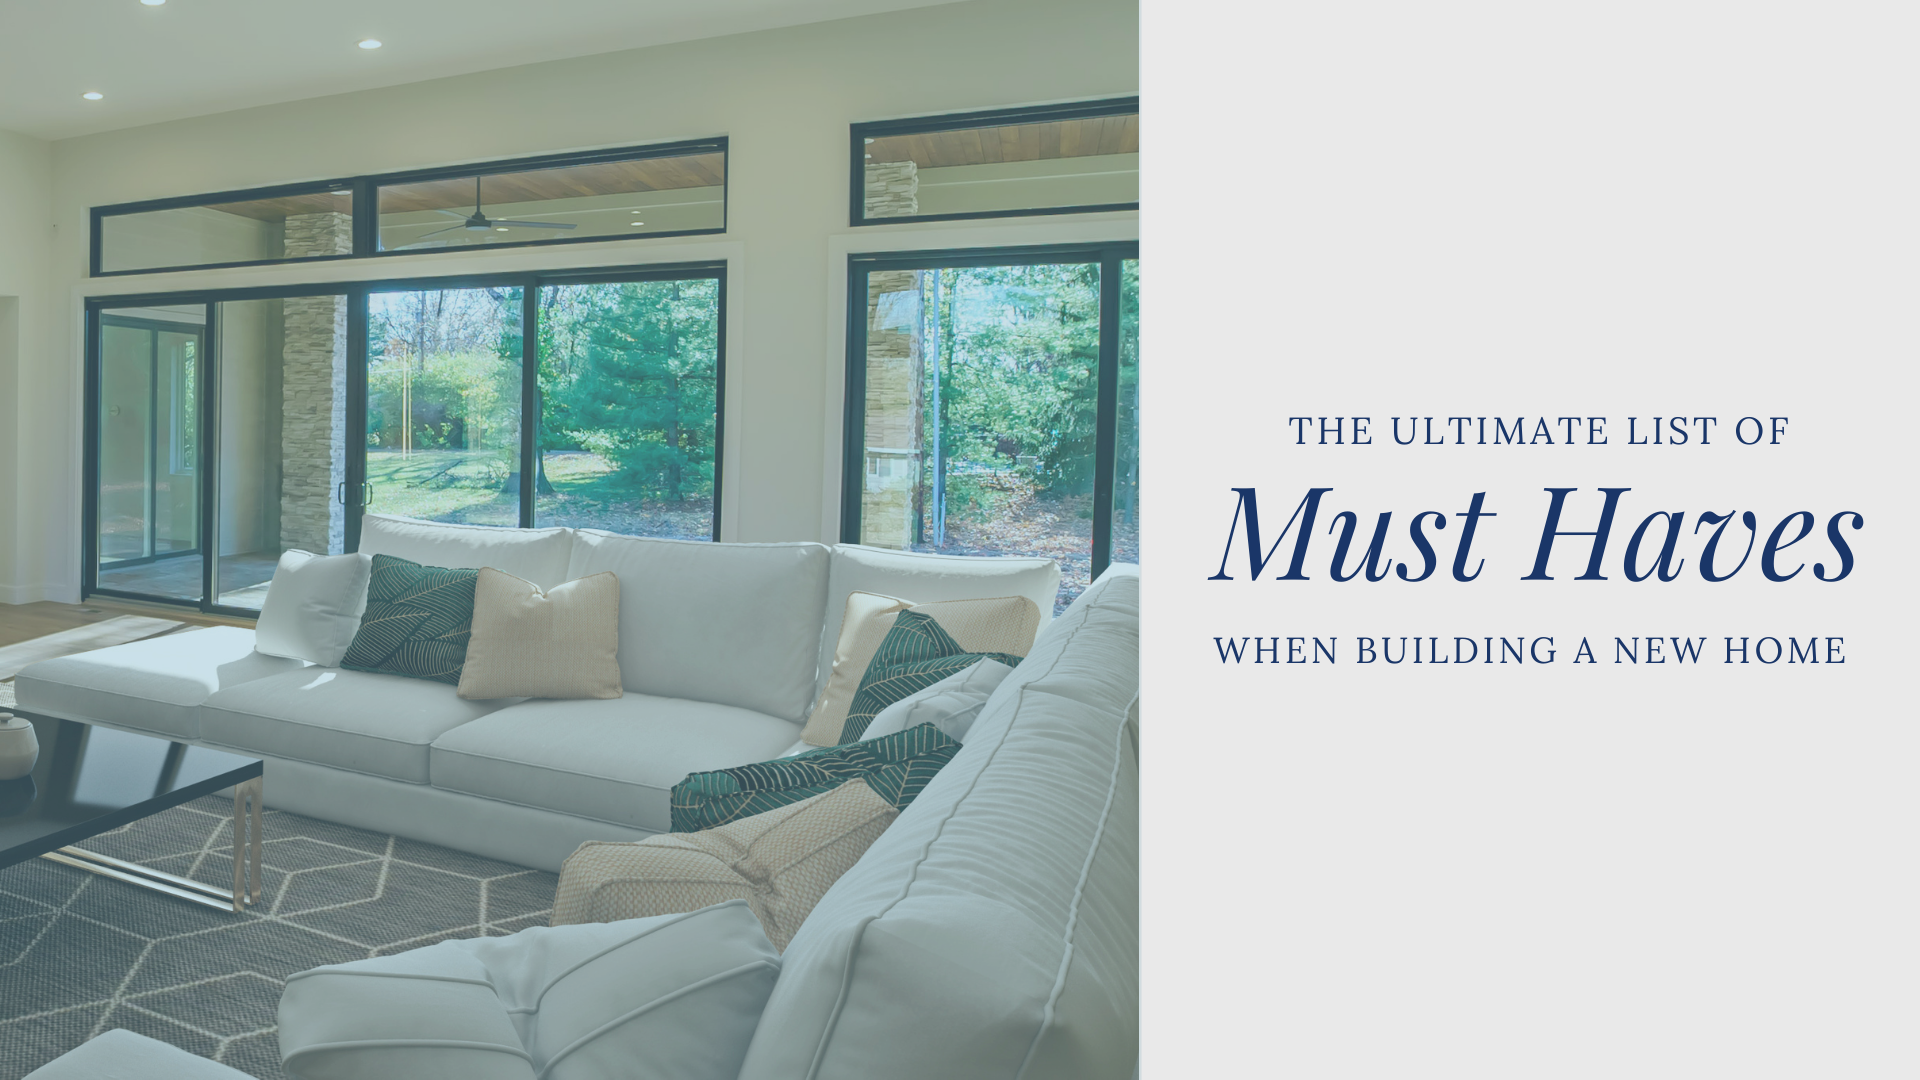 Ultimate List of Must Haves When Building a New Home